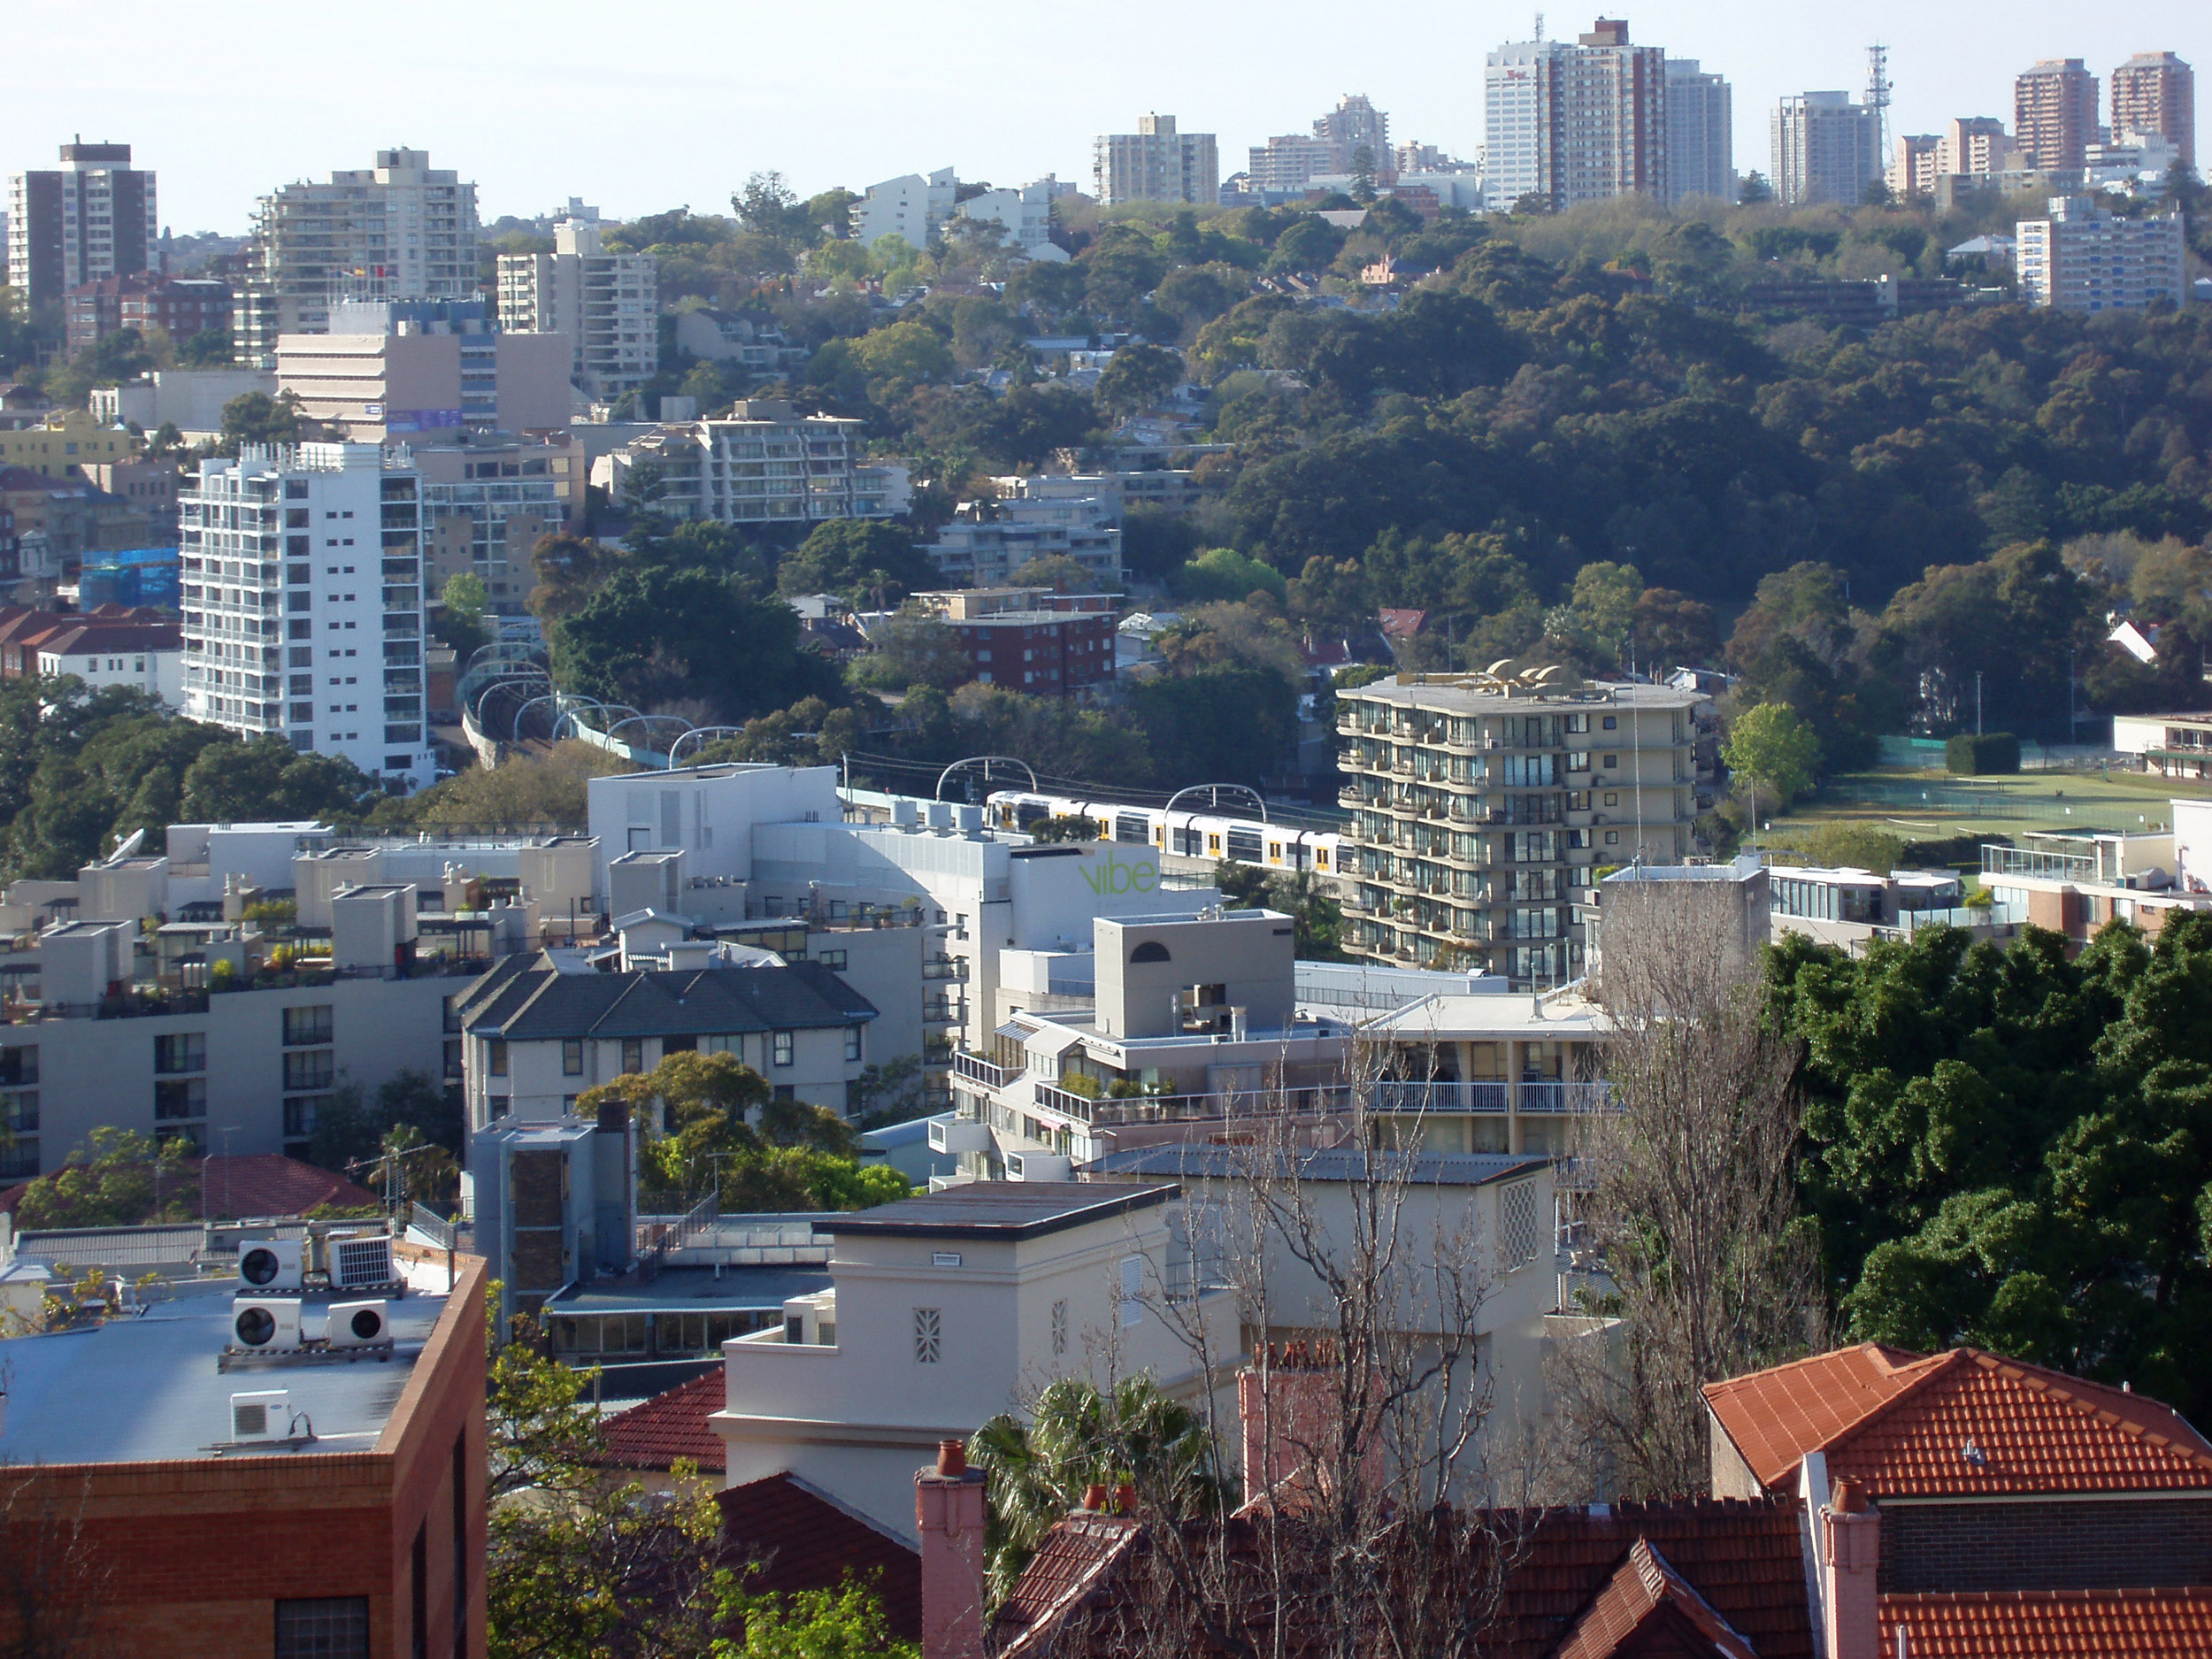 a view across rushcutters bay, an inner suburb of sydneys east